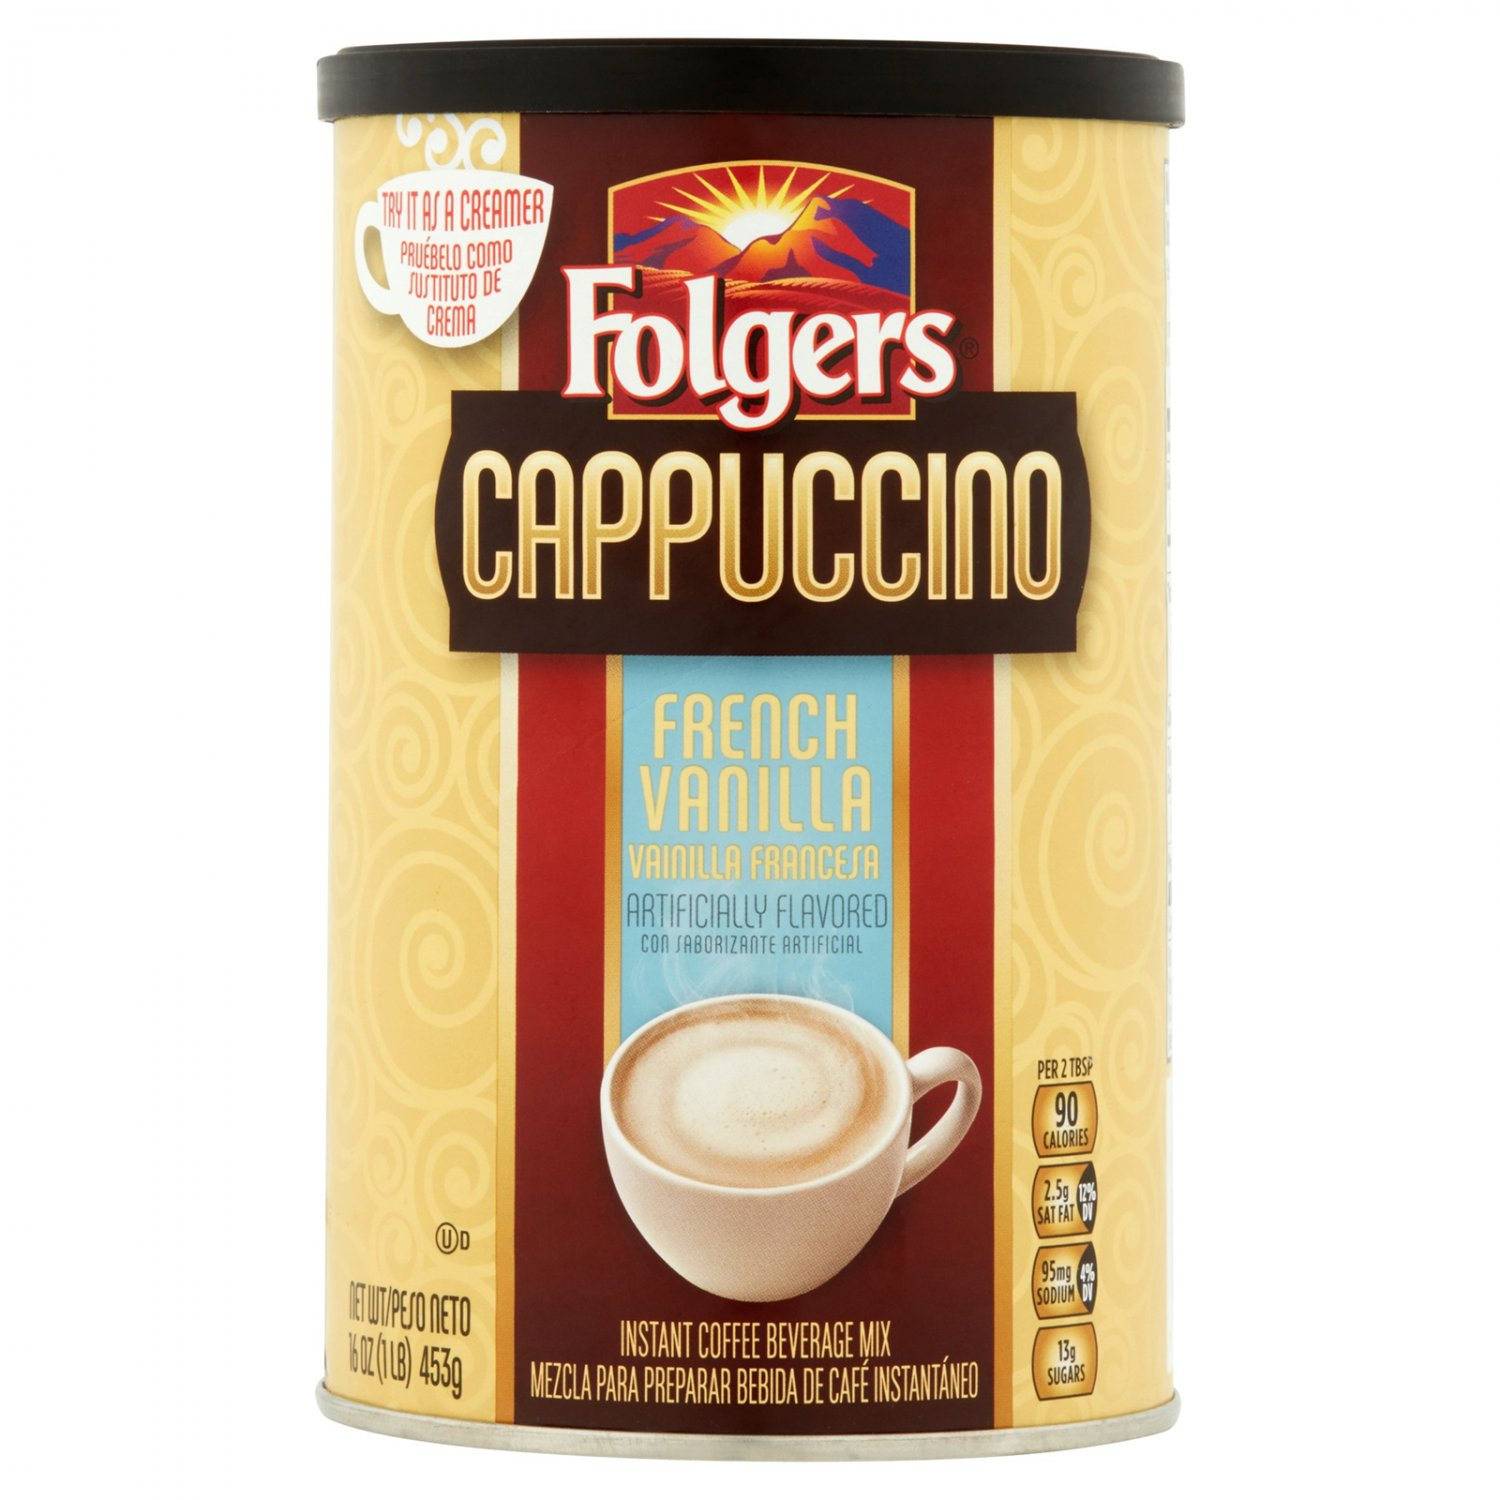 Folgers Cappuccino 16 oz French Vanilla coffee drink mix hot beverage latte snack beverage